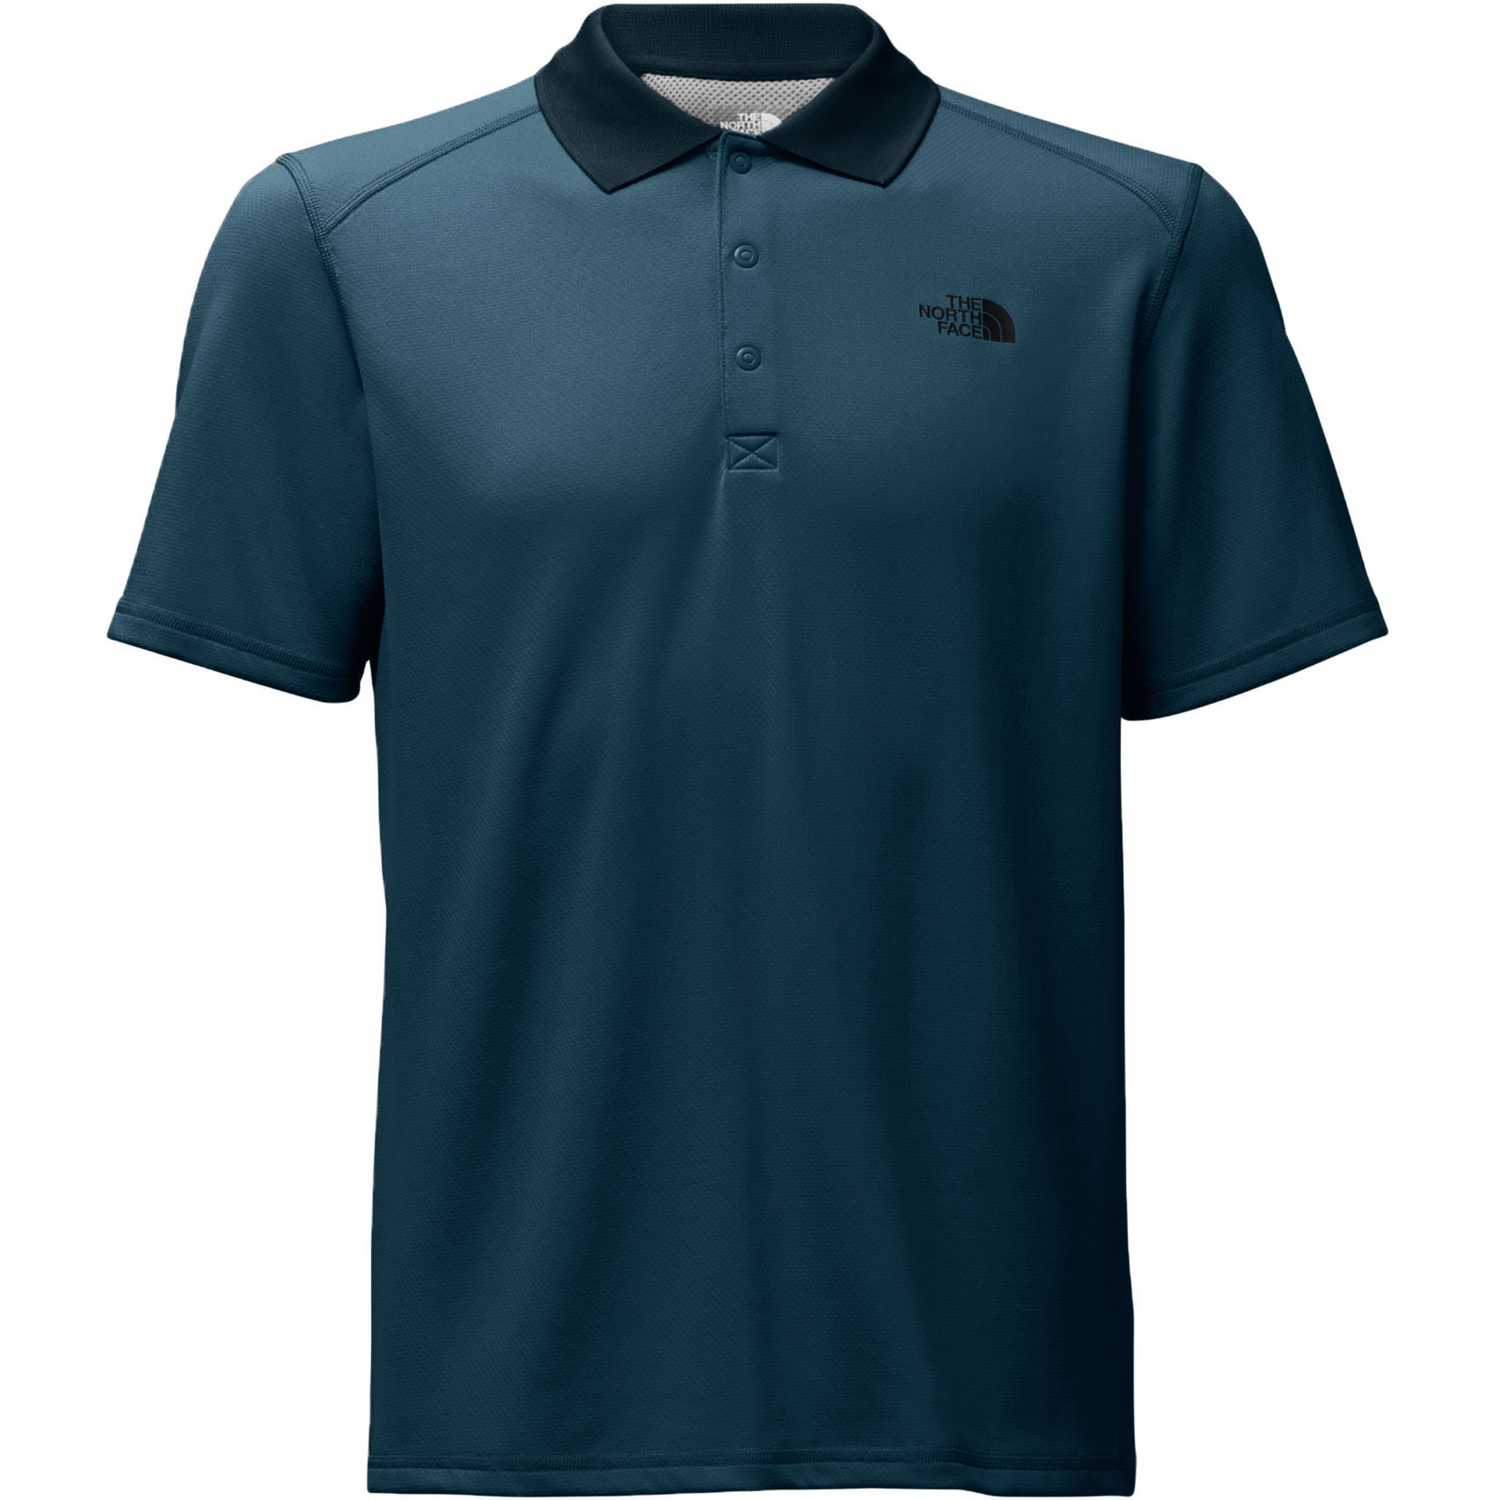 The North Face m s/s horizon polo Acero Camisetas y Polos Deportivos